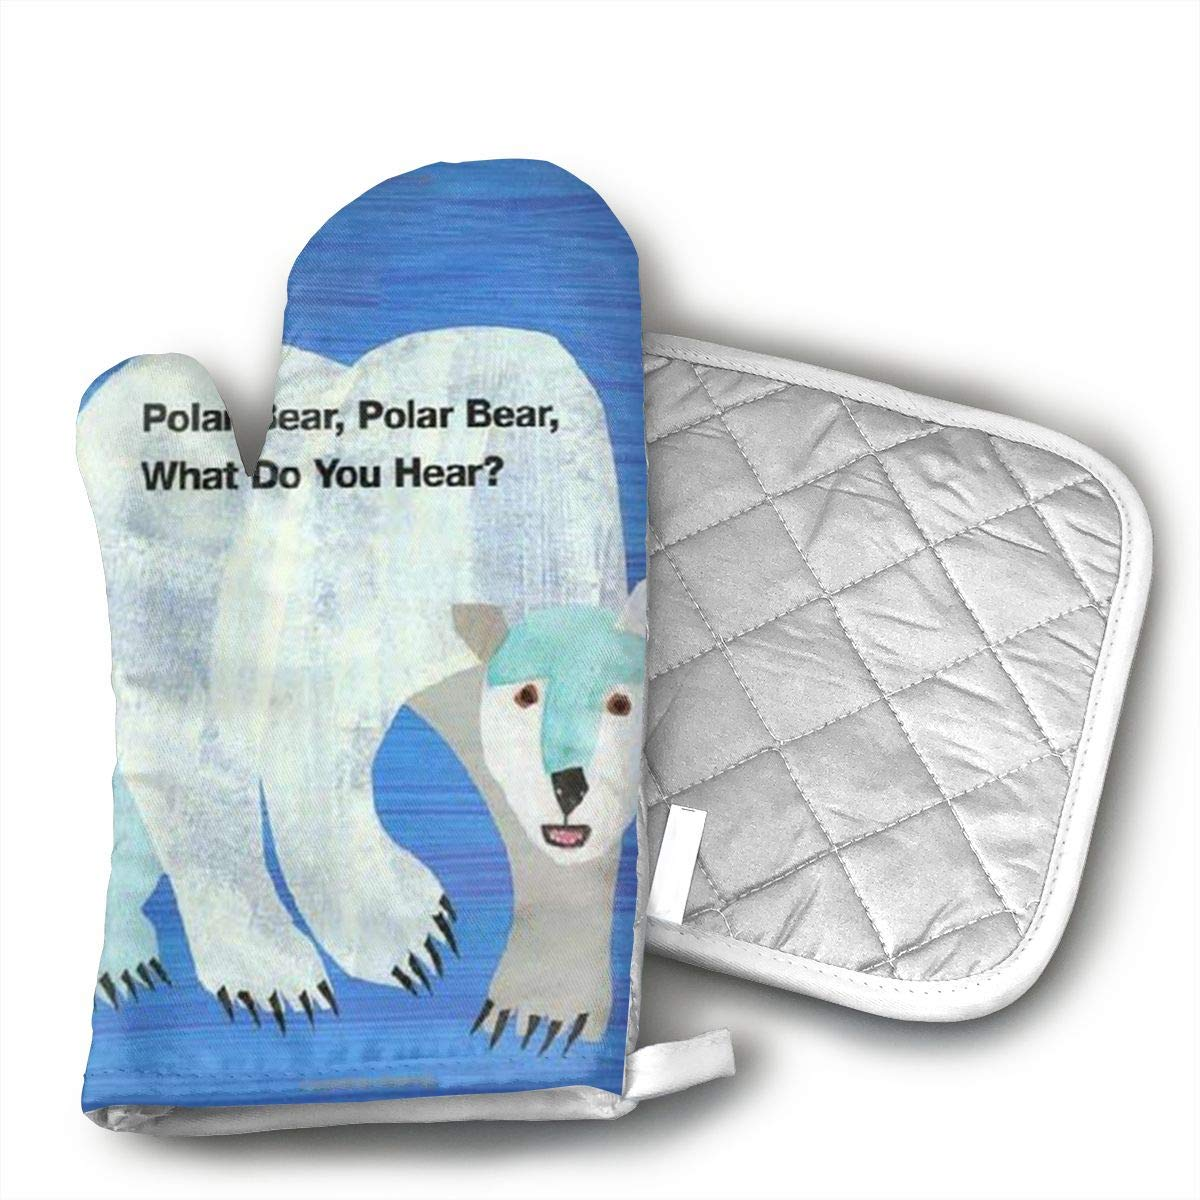 Polar Bear What Do You Hear Oven Mitt And Pot Holder Or Gloves 100 Cotton High Heat Resistance Home Kitchen